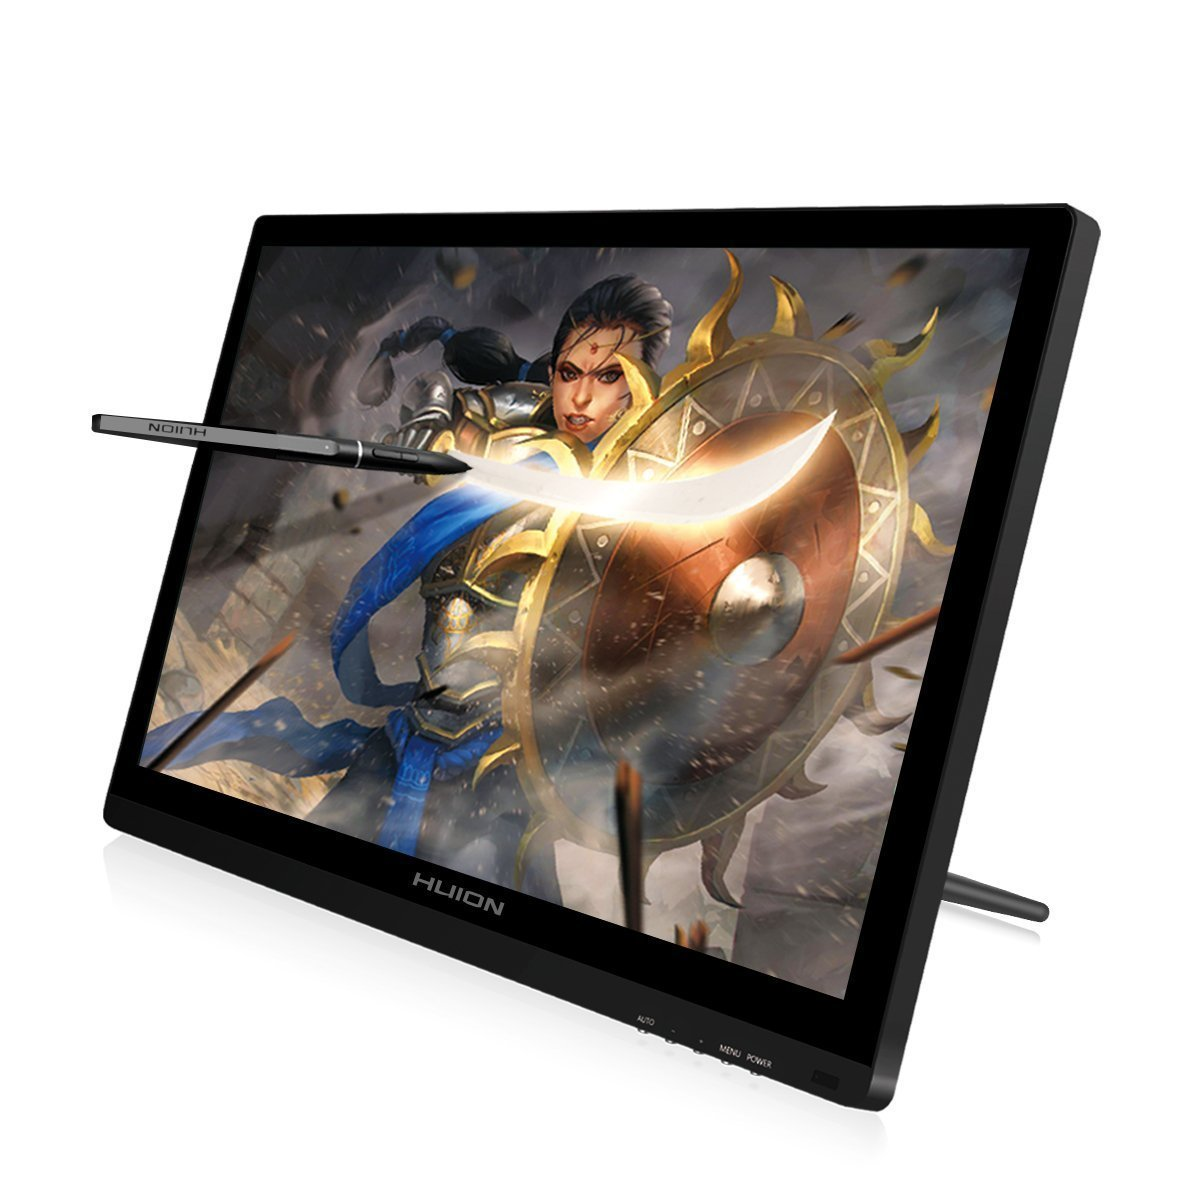 Huion KAMVAS GT-191 Drawing Tablet with HD Screen 8192 Pressure Sensitivity - 19.5 Inch by Huion